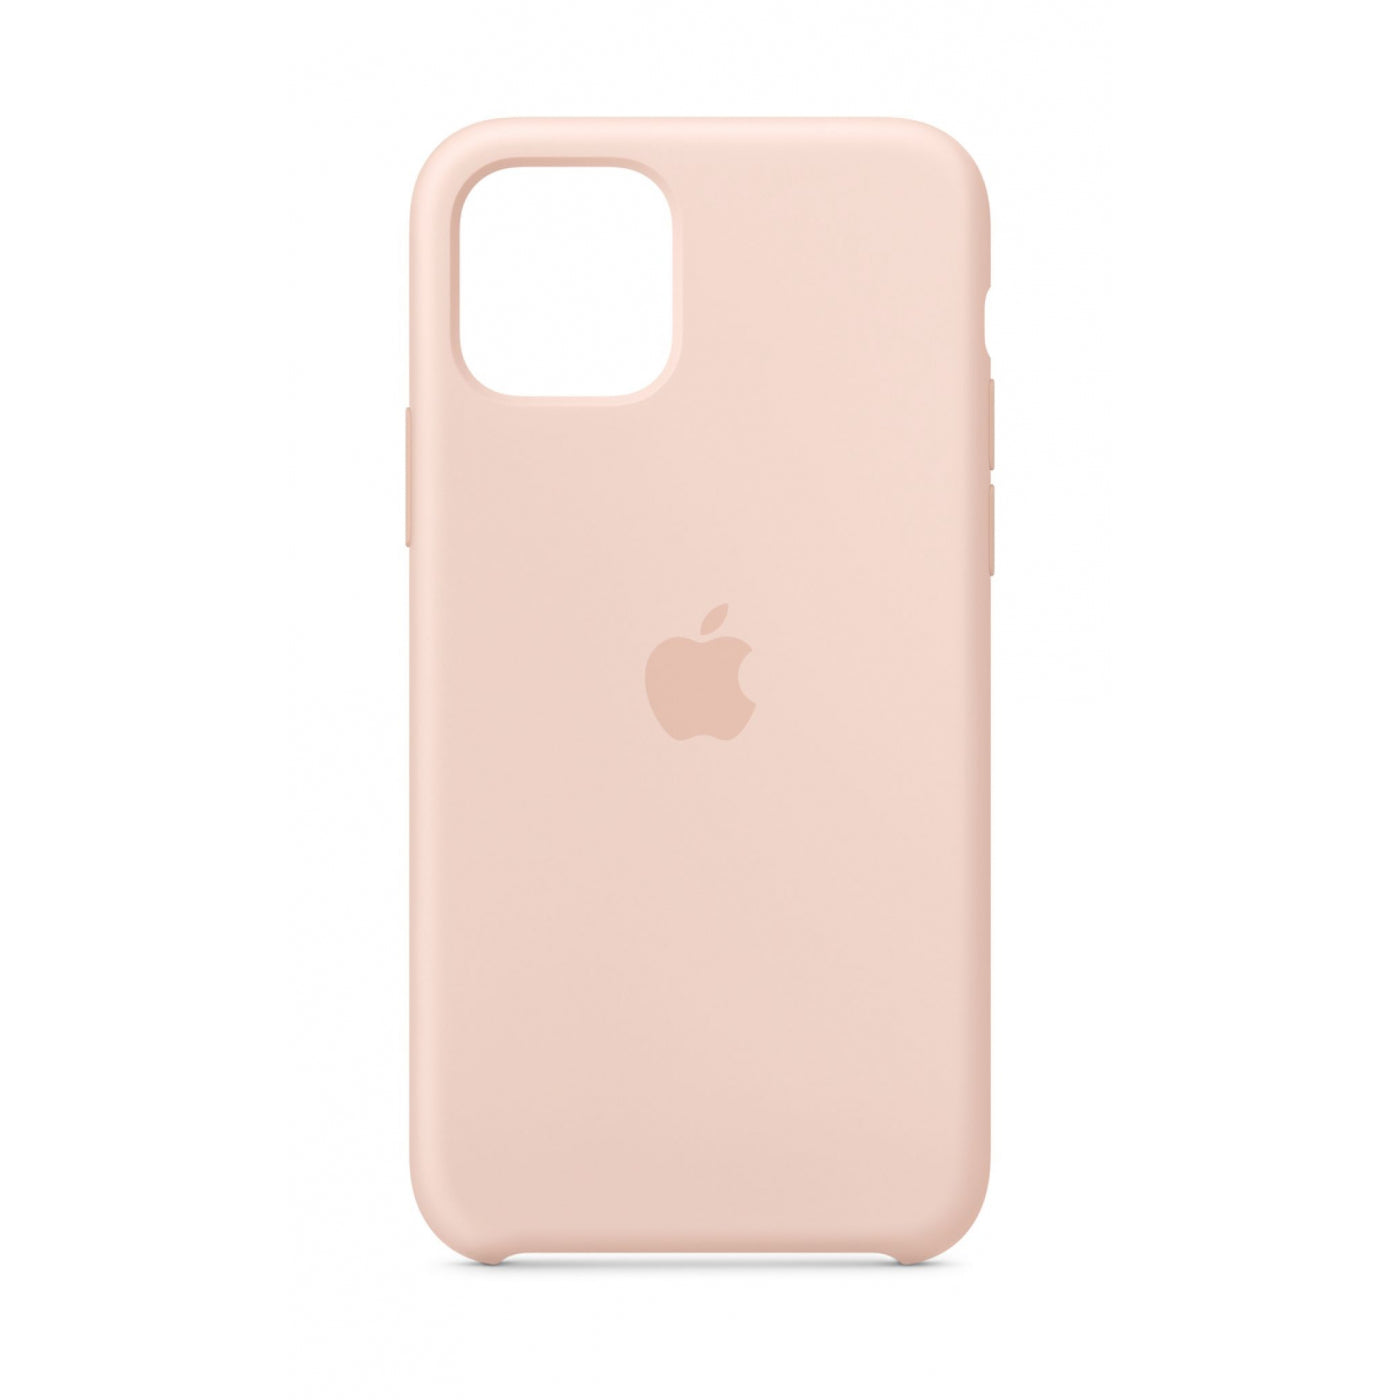 Silicon Case For iPhone 11 – Golden - Mobilegadgets360